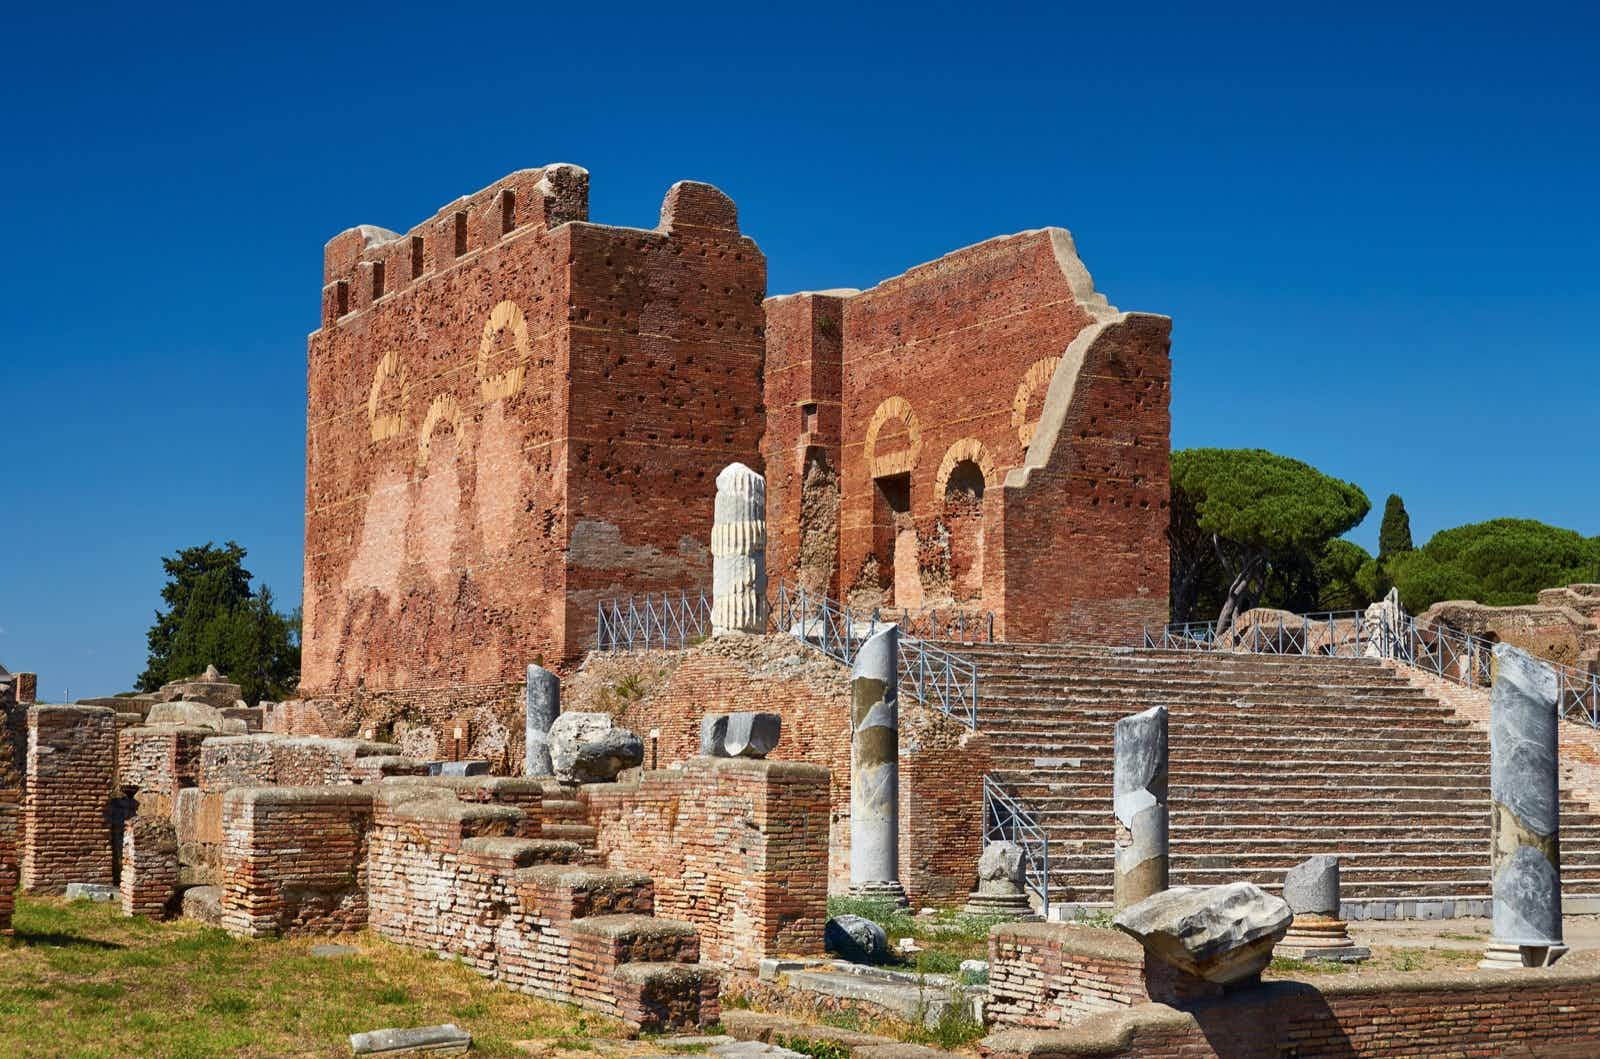 Ostia Antica was once Rome's seaport, but now the ruins lie 2 miles from the sea © Andrew Lightfoot / EyeEm / Getty Images